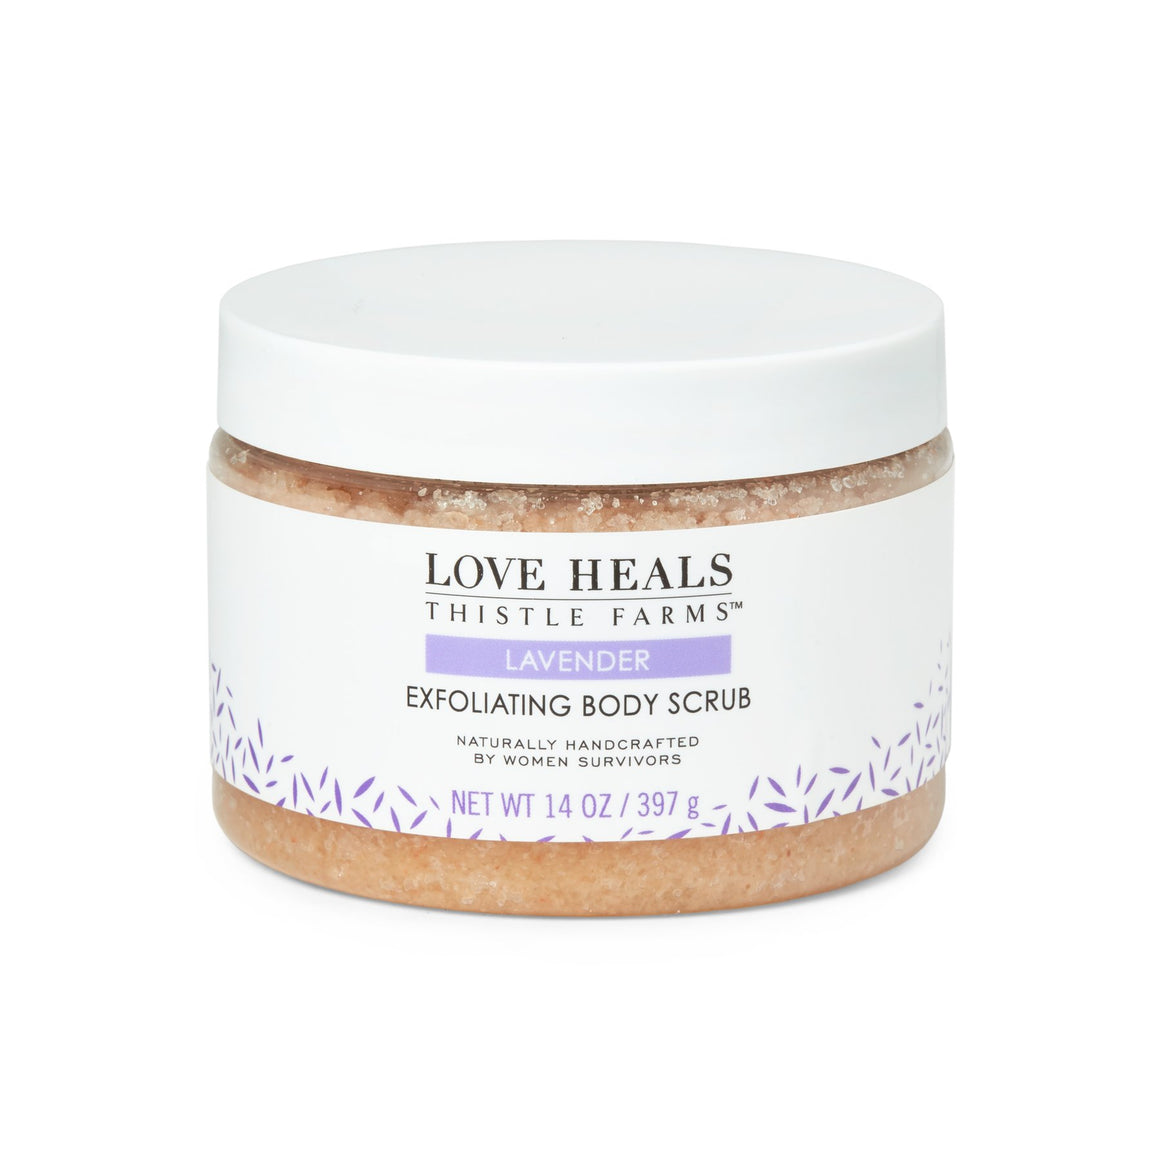 Thistle Farms Exfoliating Body Scrub